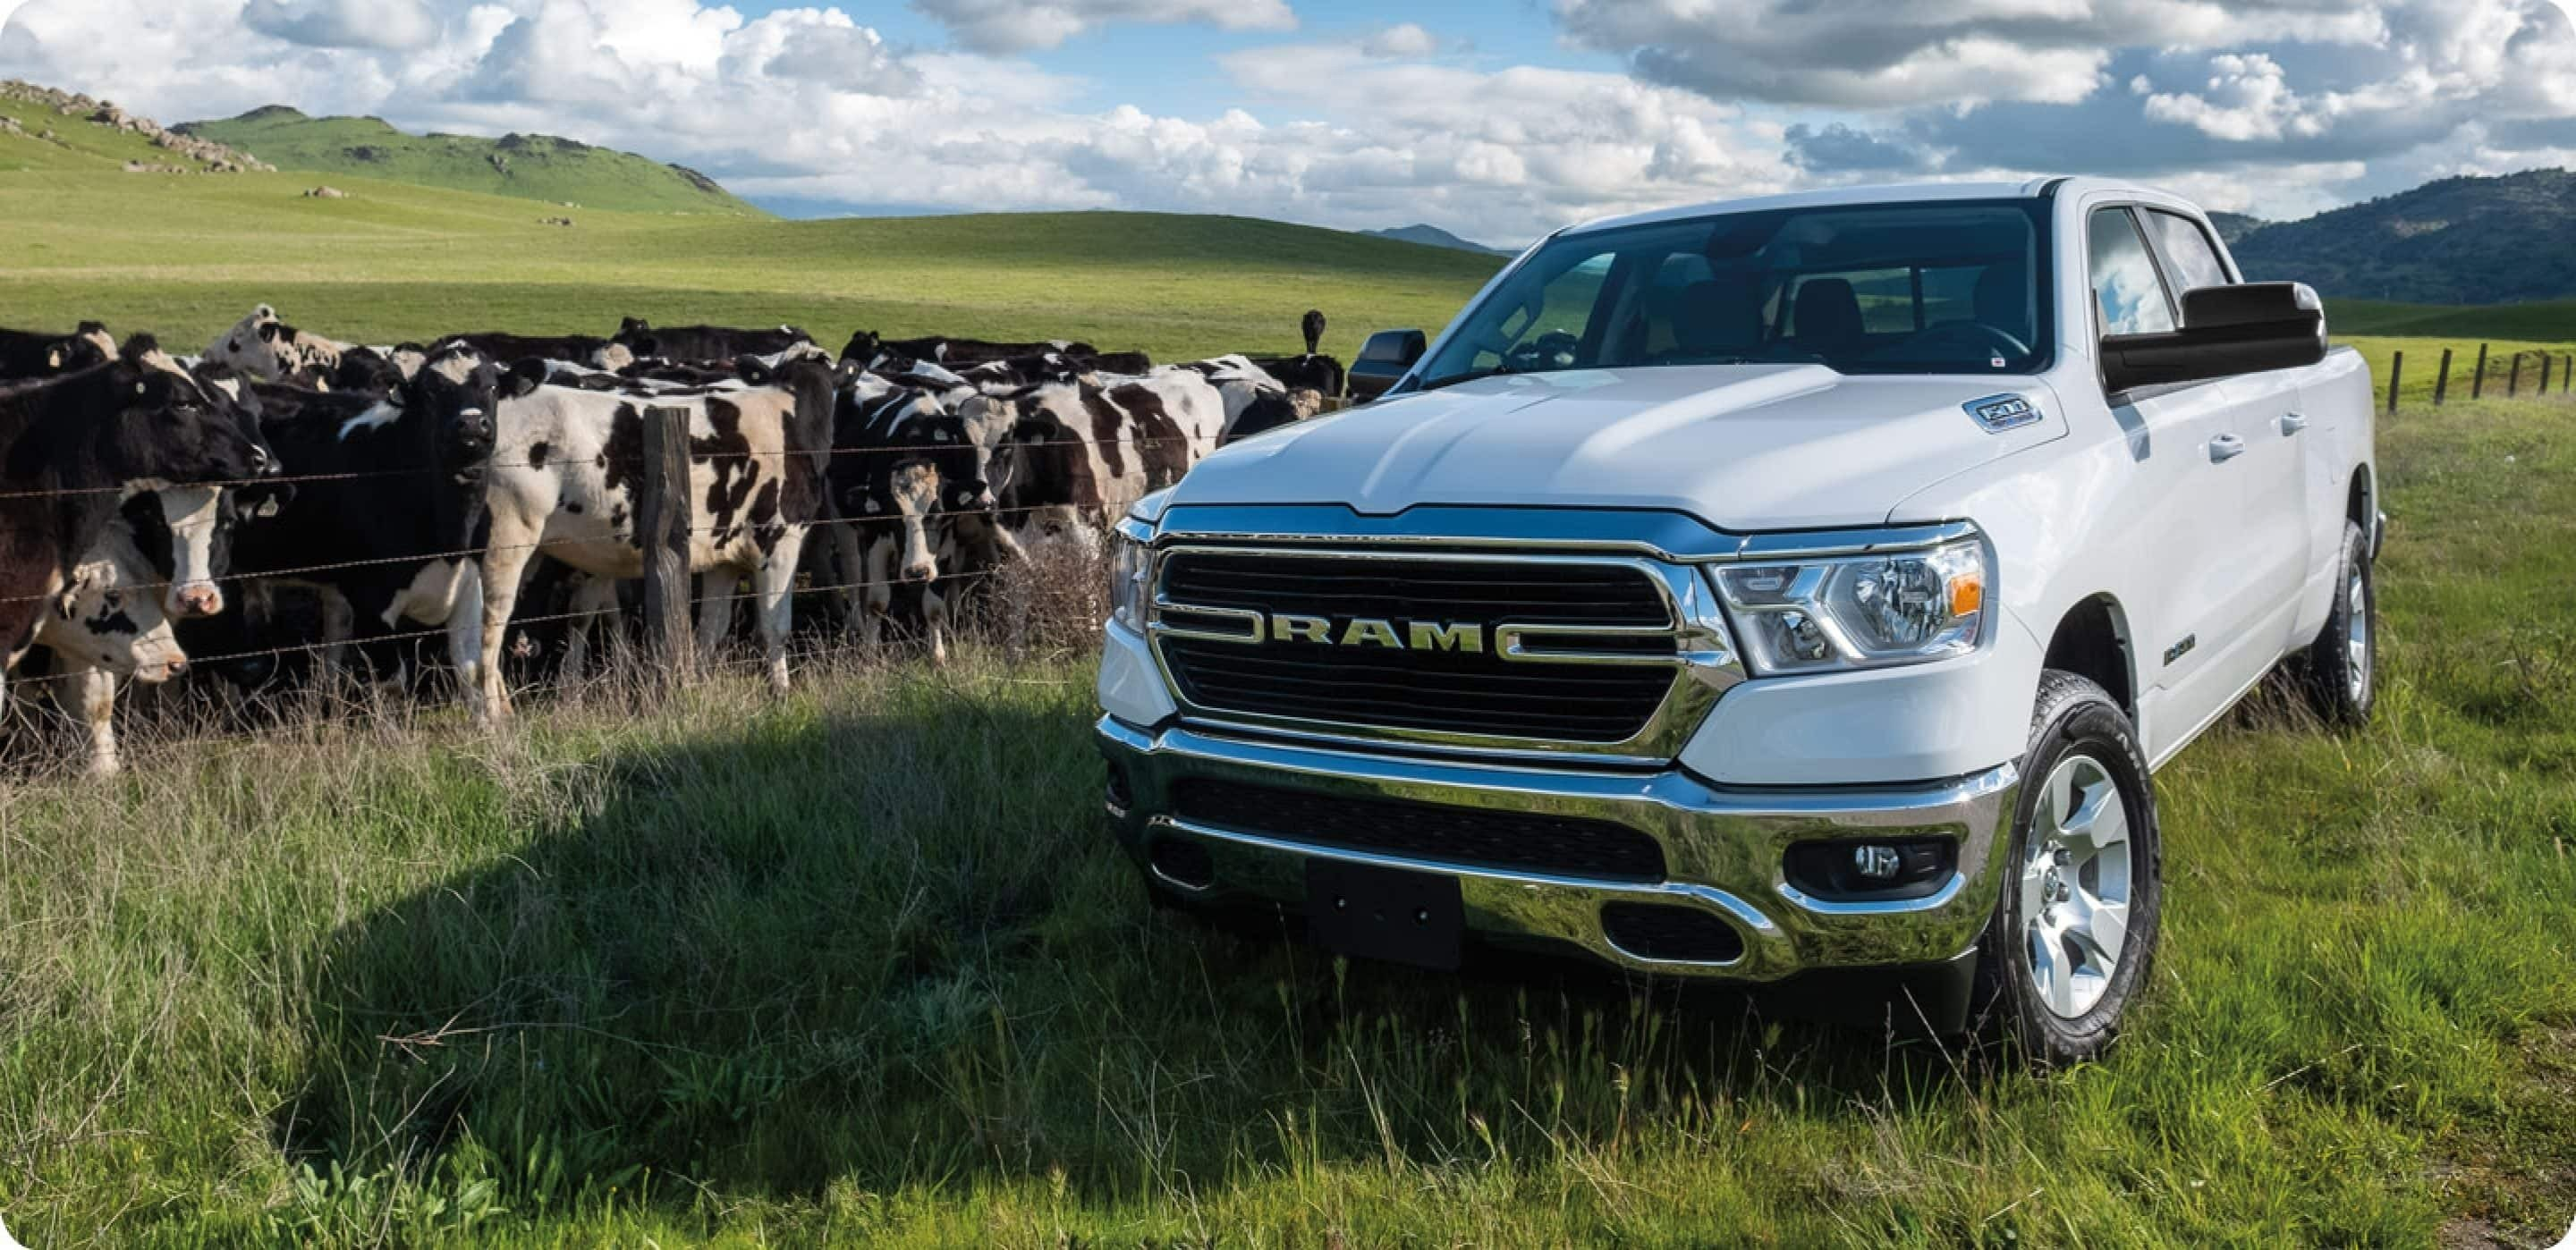 2021 Ram 1500 Makes Car and Driver's 10Best Vehicles List Again